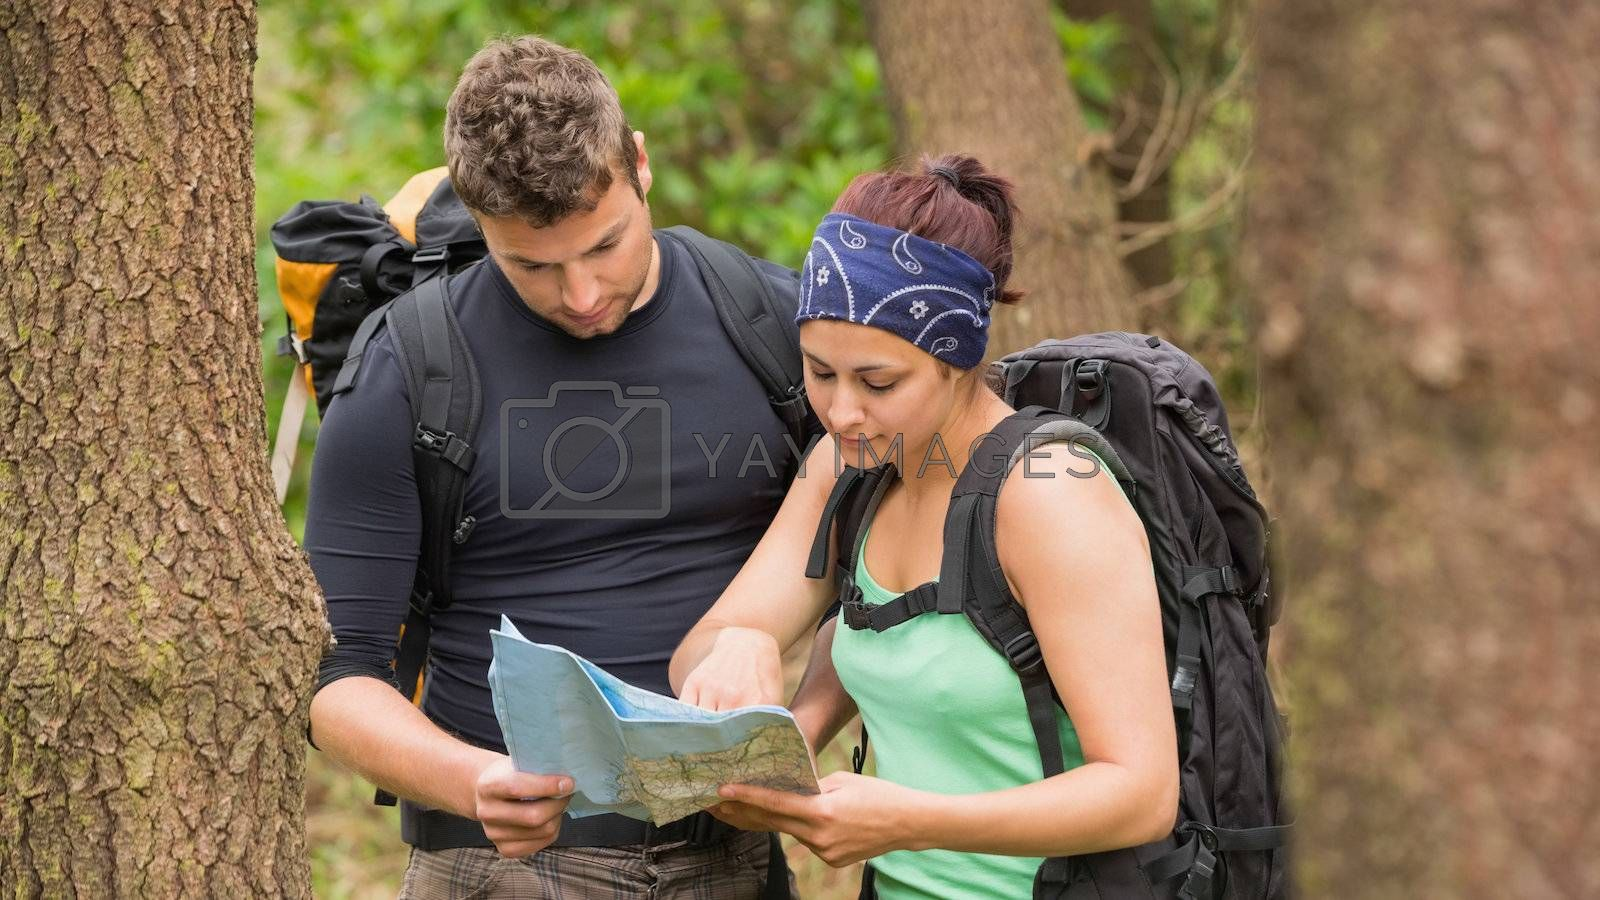 Fit couple reading map in a forest by Wavebreakmedia